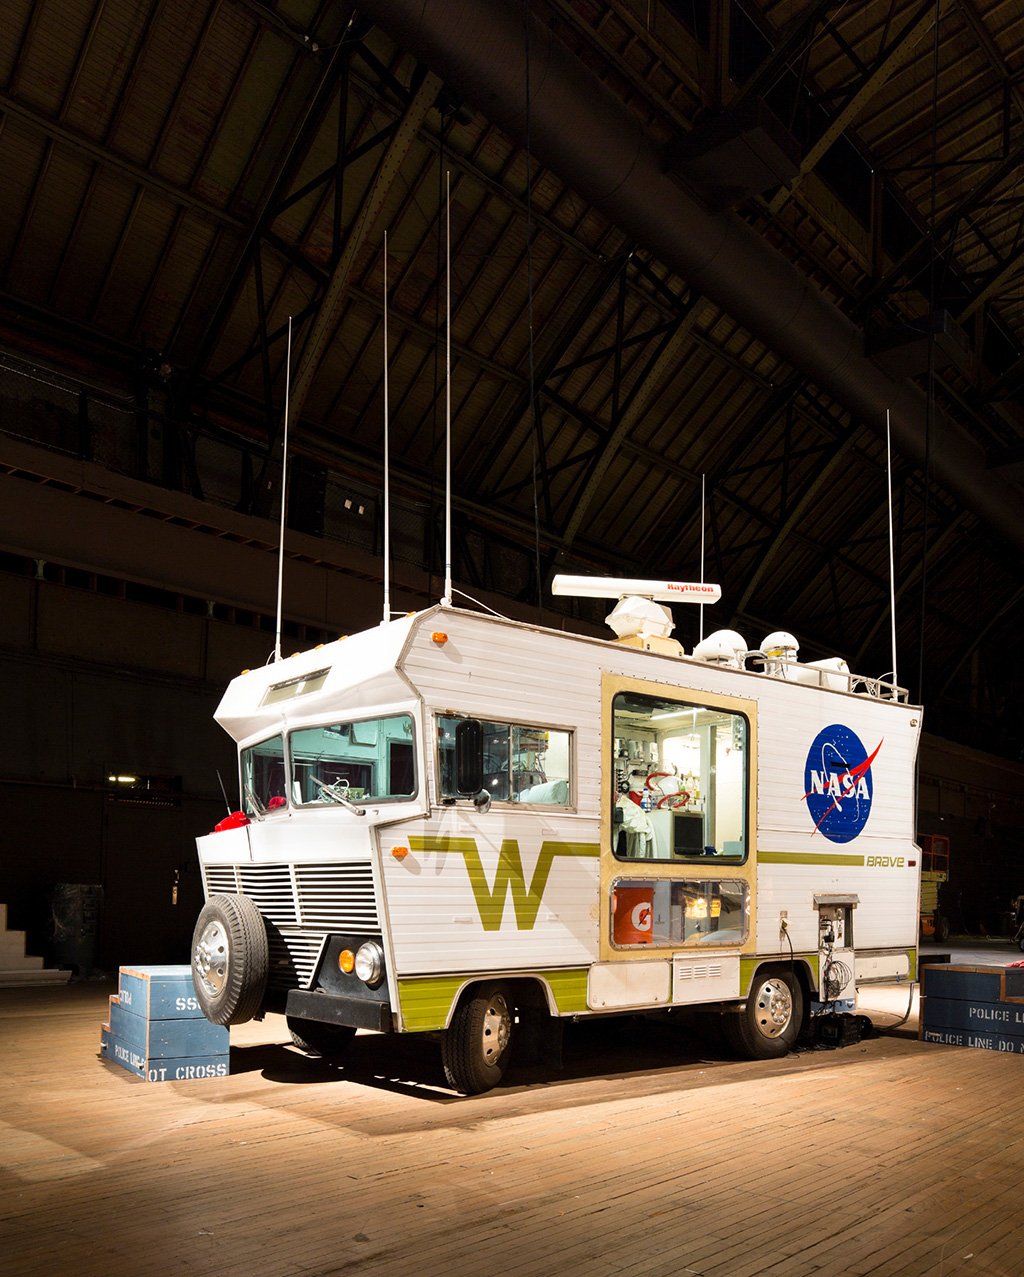 Winnebago Brave as part of a display by sculptor Tom Sachs.